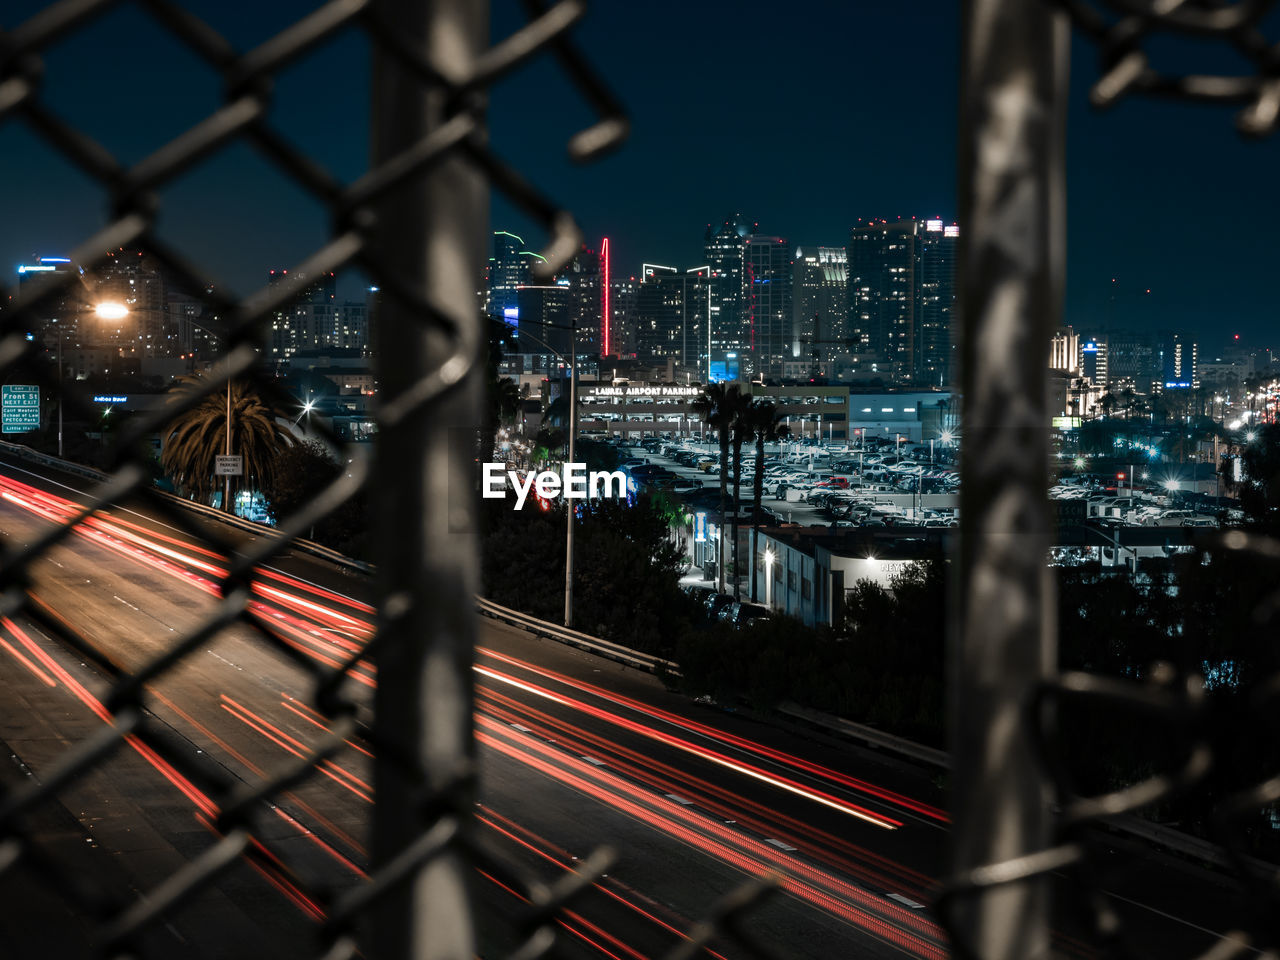 High Angle View Of Light Trails On Road In City Seen Through Broken Chainlink Fence At Night